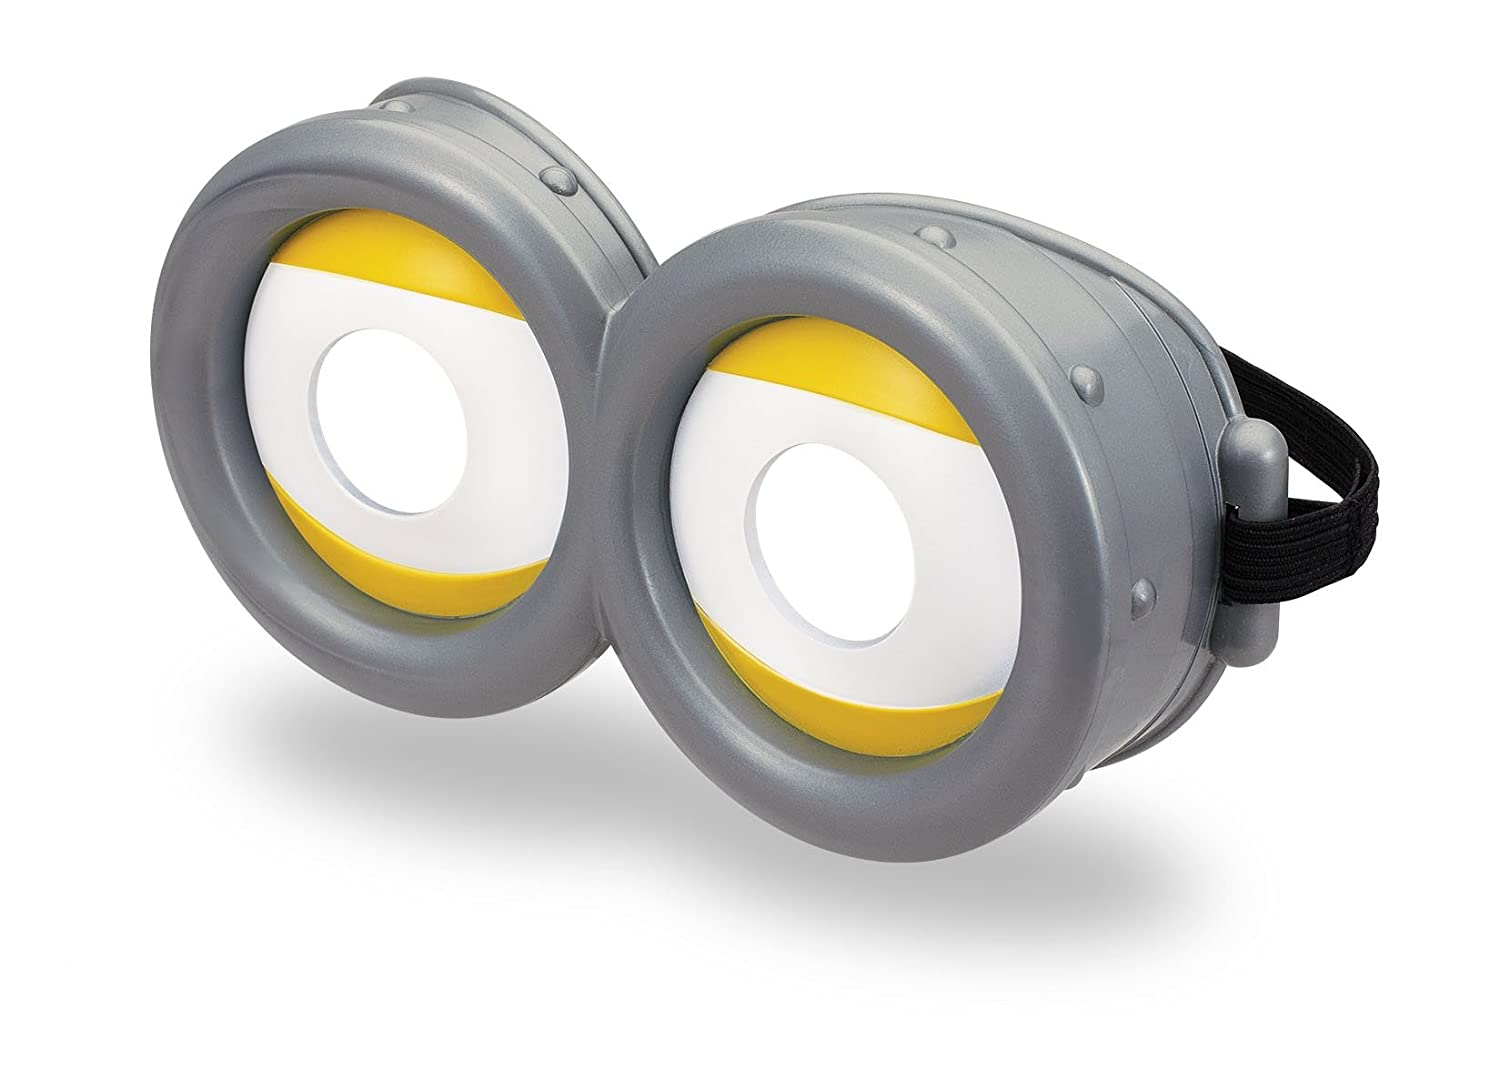 08dfef8d3e8 Buy Despicable Me 2 Soft Minion Goggles Online at Low Prices in India -  Amazon.in